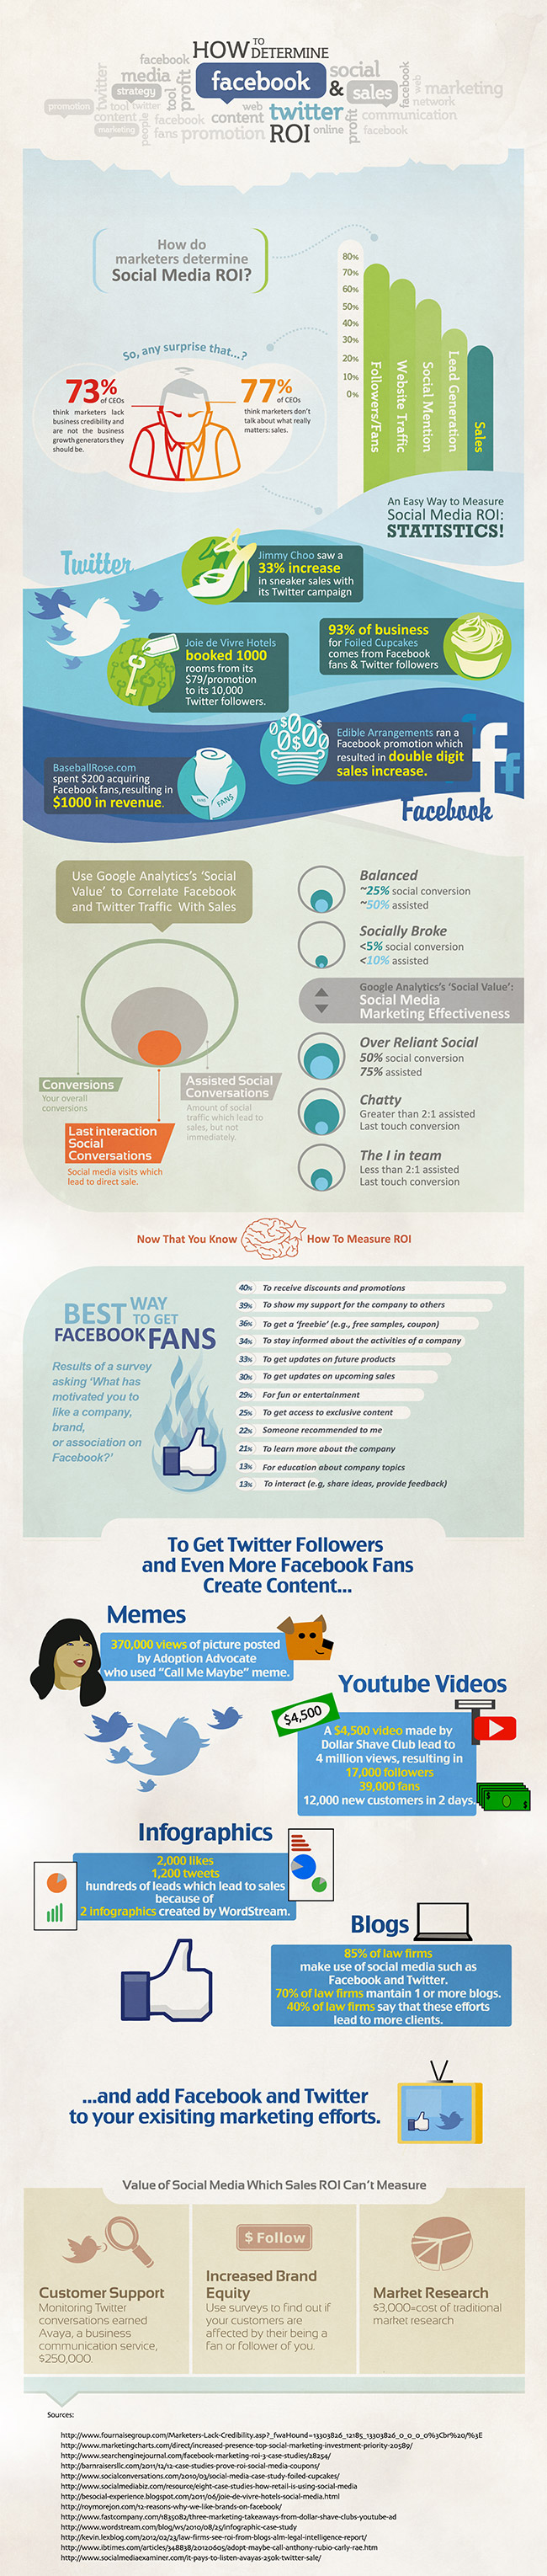 facebook_twitter_roi-infographic-web